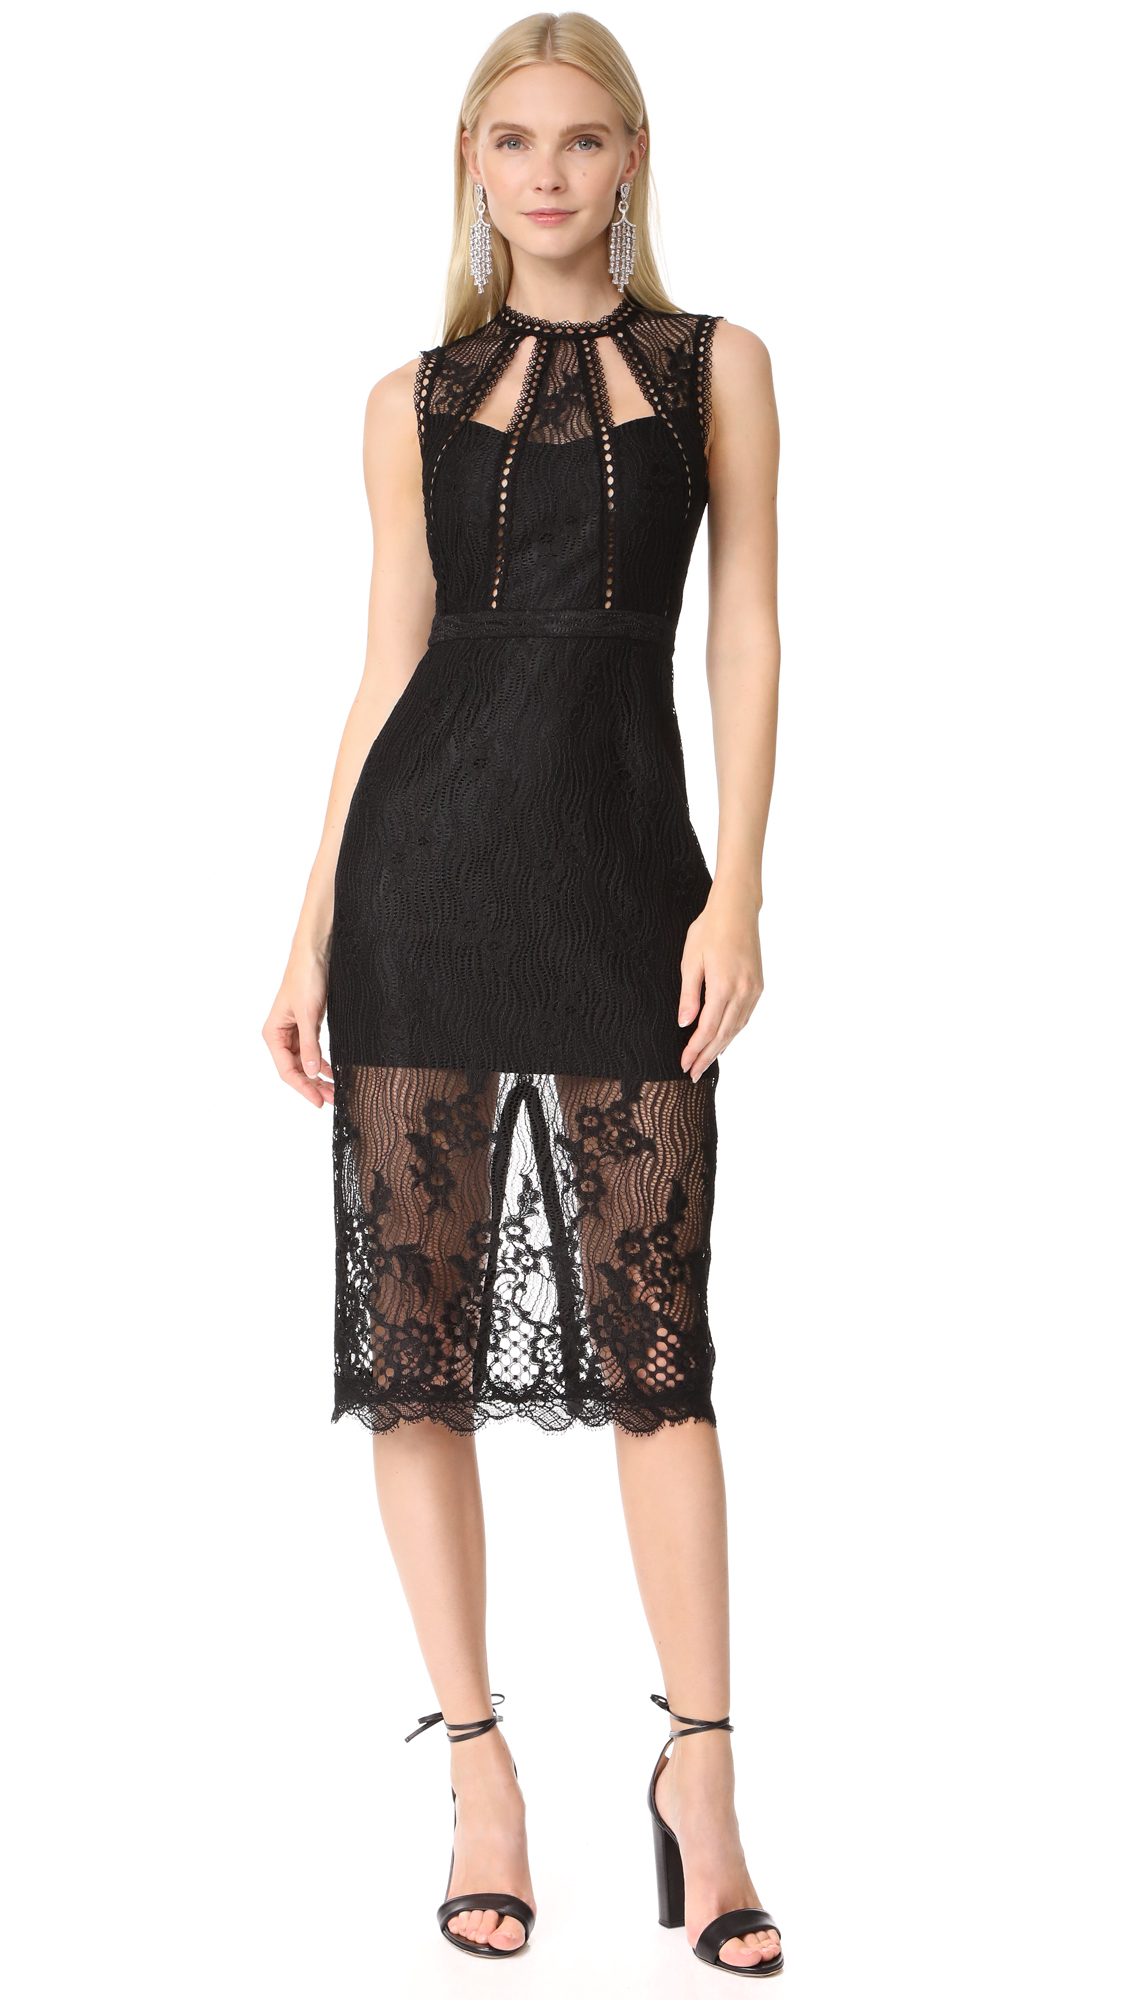 Alexis Oralie Dress - Black